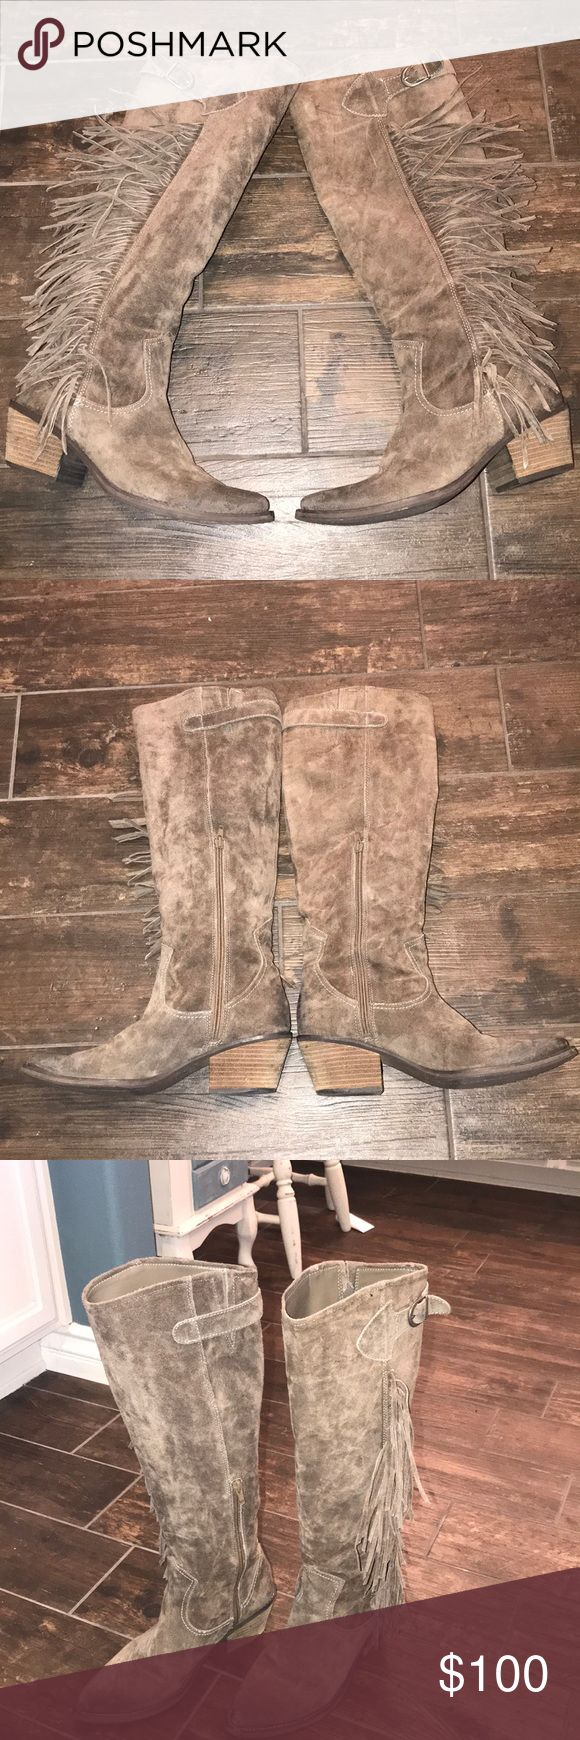 """Carlos Santana Boots Stylish Carlos Santana Boots in EXCELLENT CONDITION! They have a natural worn look and look great with skirts or jeans. There is no tag inside, so I'm not positive of material. The outer seems to be genuine suede. Inside is a soft man made material. 19"""" from bottom of heel to top. Size 8.5. 2.5"""" heel. Carlos Santana Shoes Heeled Boots"""